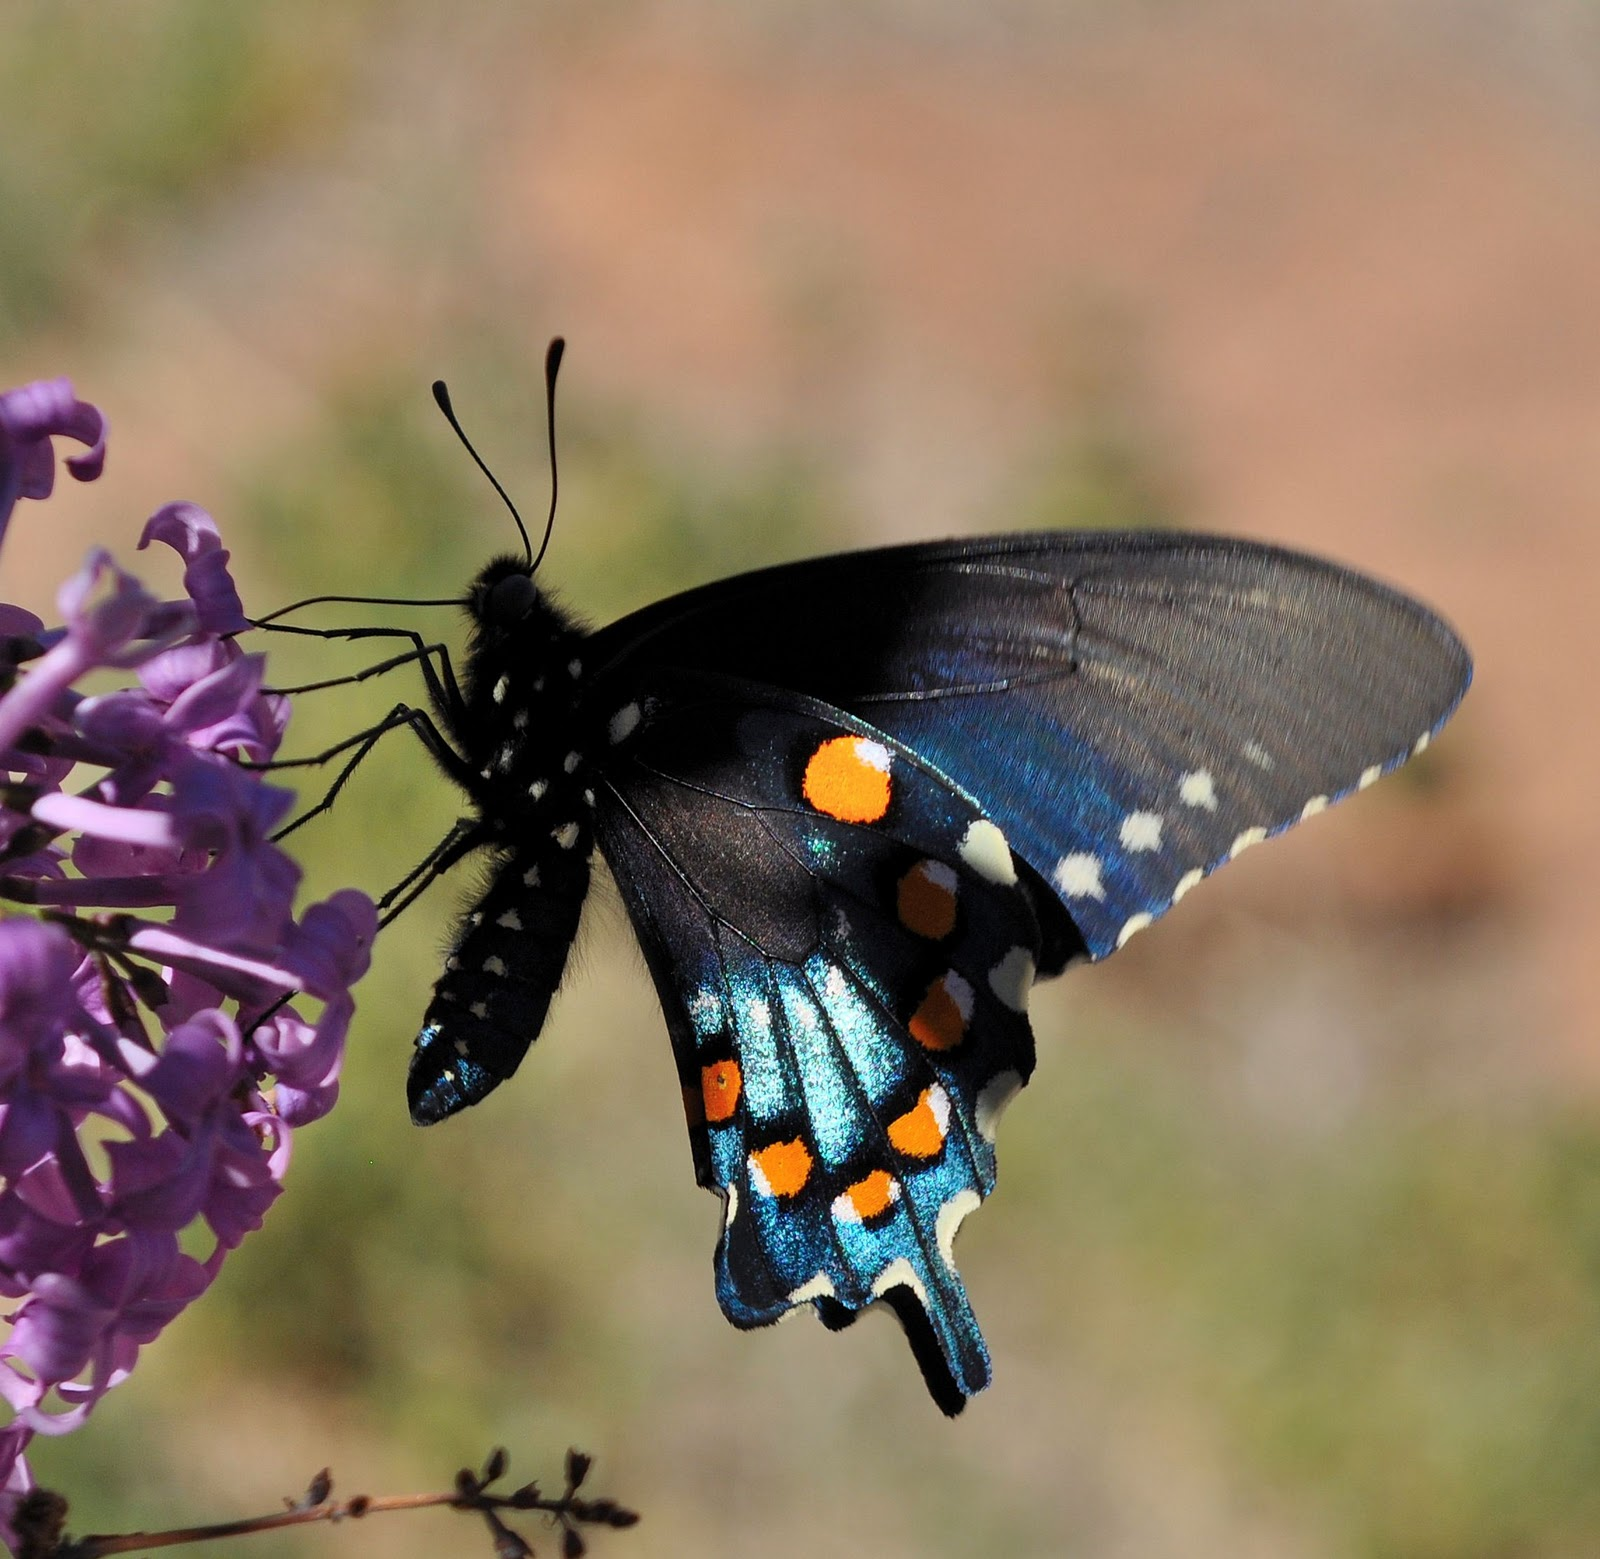 John's Photos: Blue Swallow Tail Butterfly